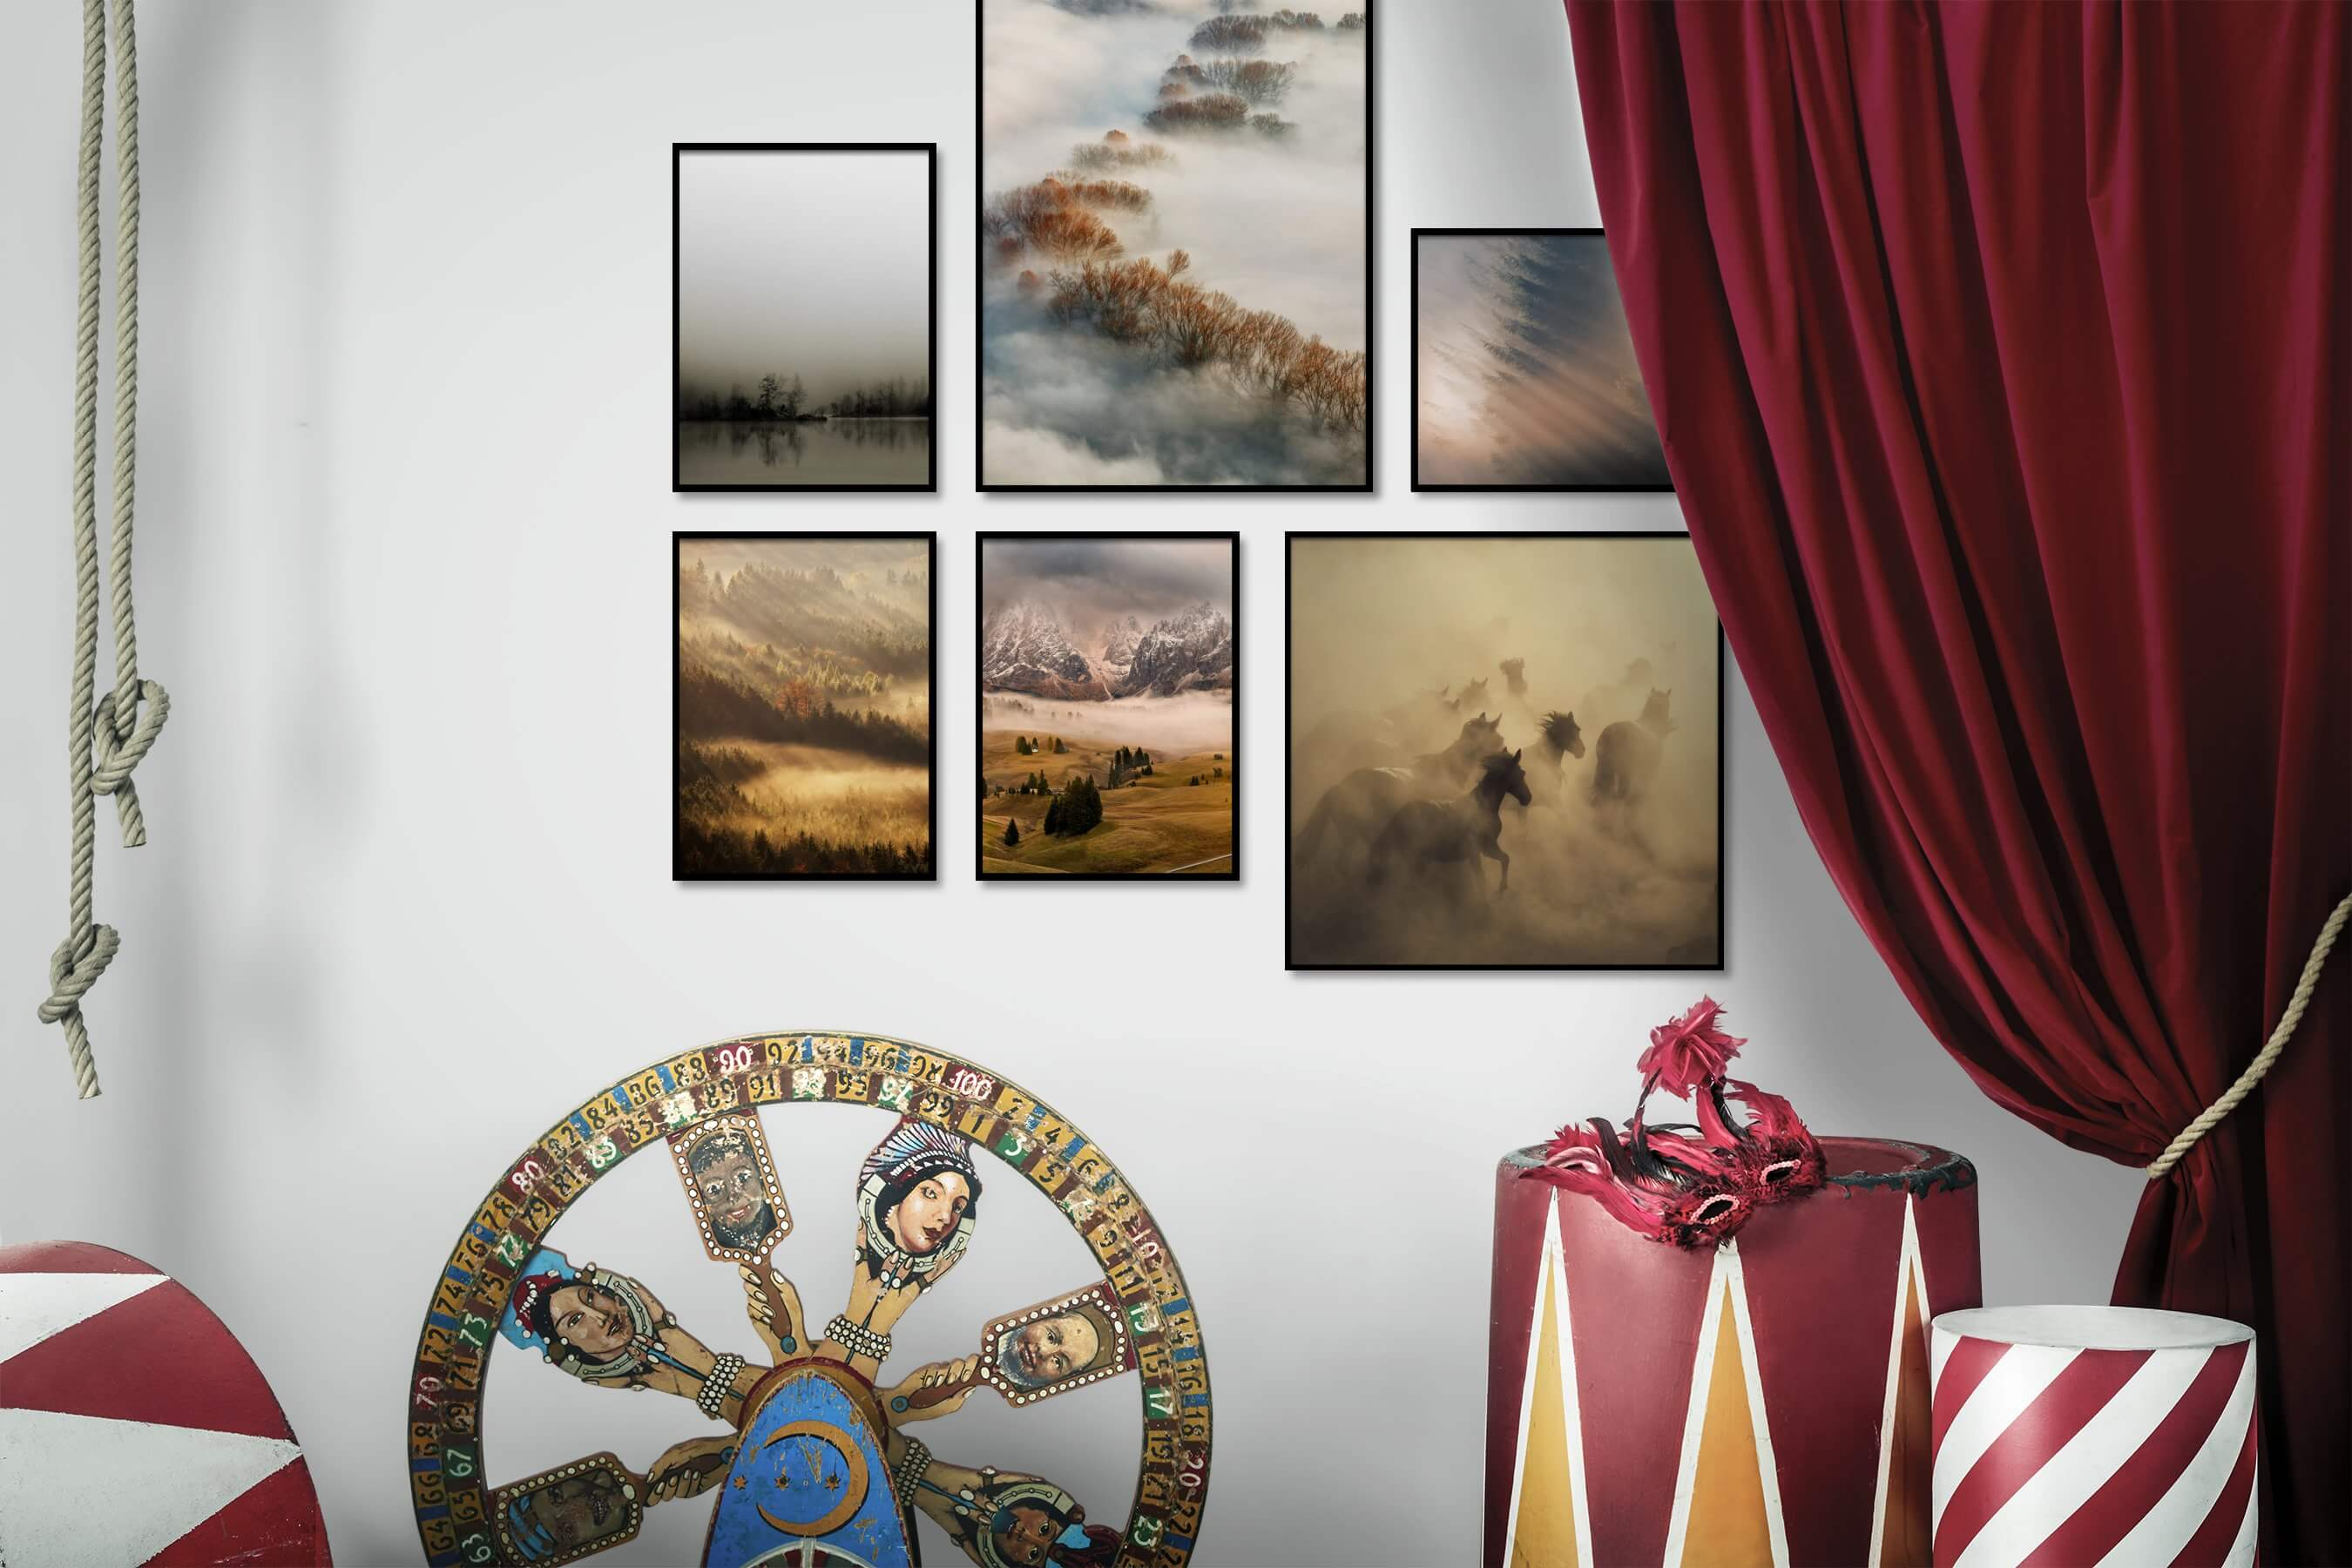 Gallery wall idea with six framed pictures arranged on a wall depicting For the Minimalist, Nature, Mindfulness, For the Moderate, Animals, and Country Life